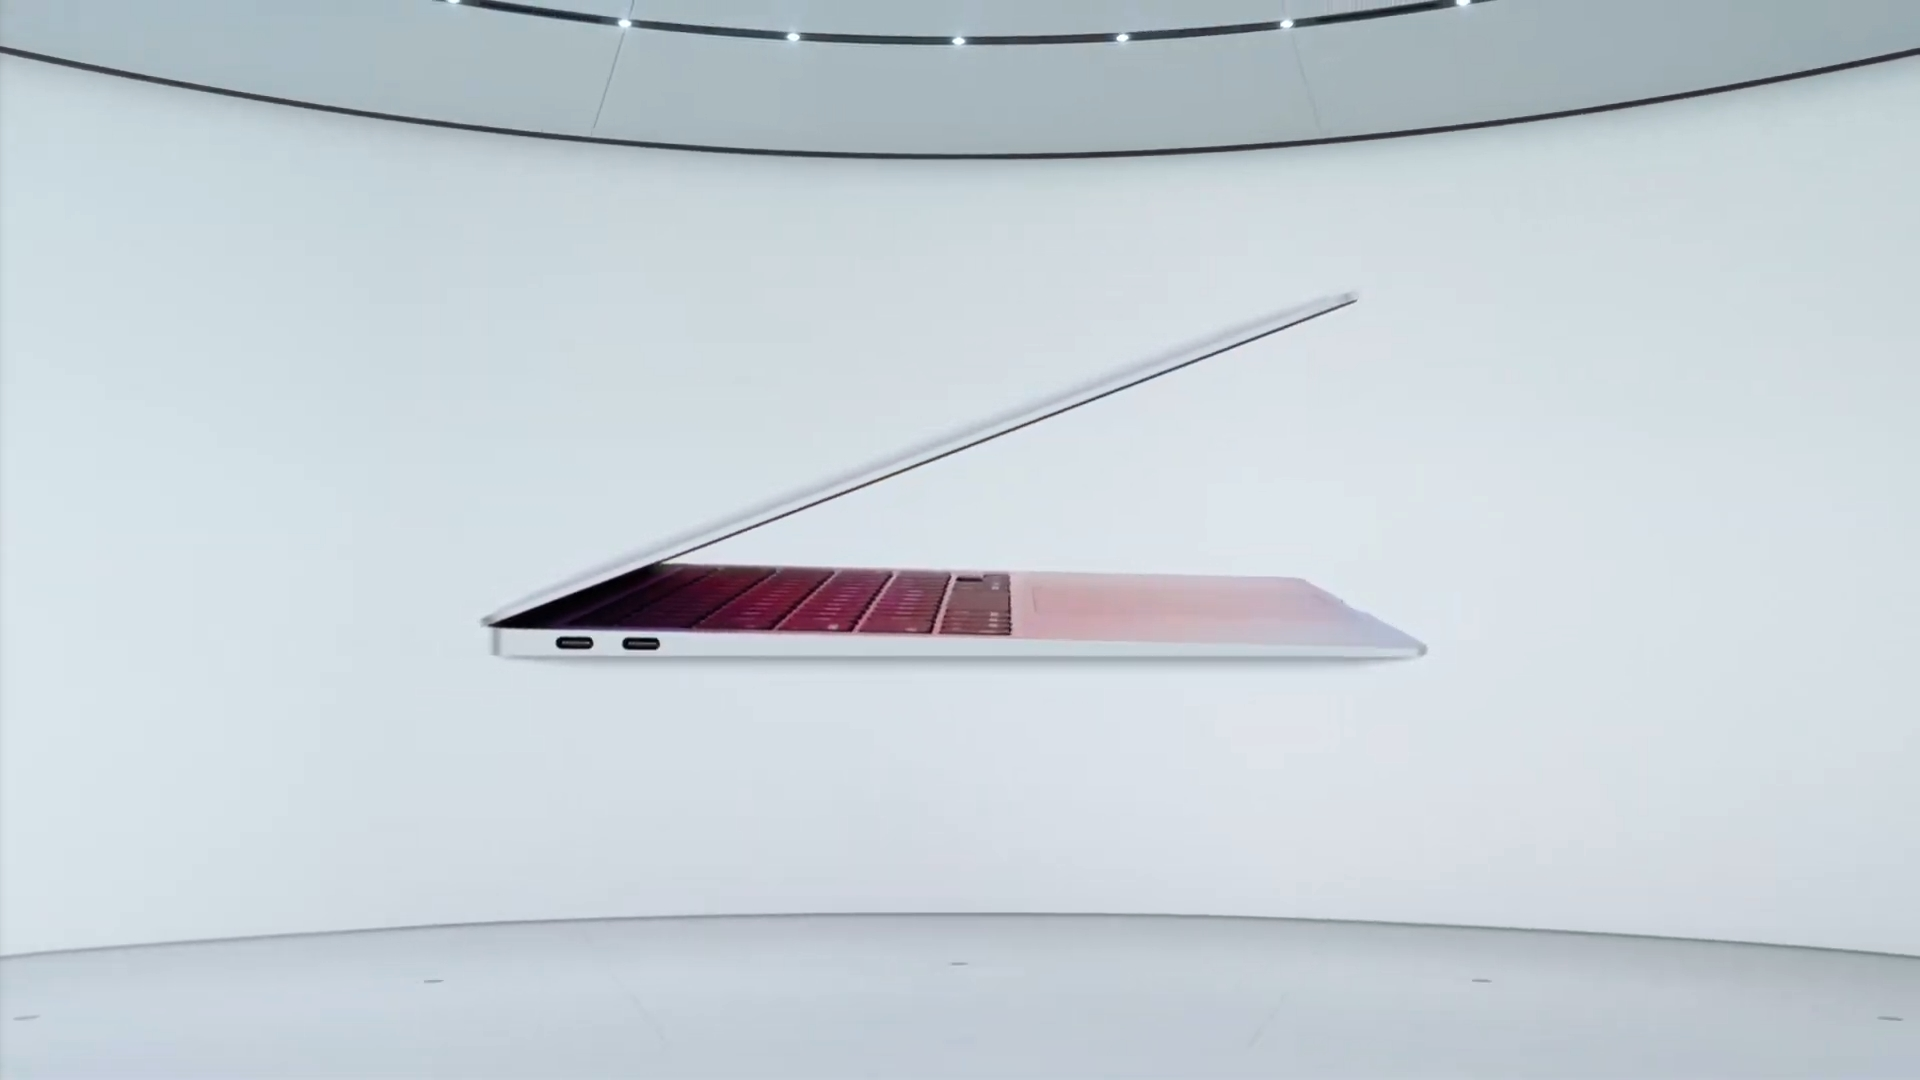 MacBook Air (M1, 2020): everything we know about the M1-powered laptop thumbnail